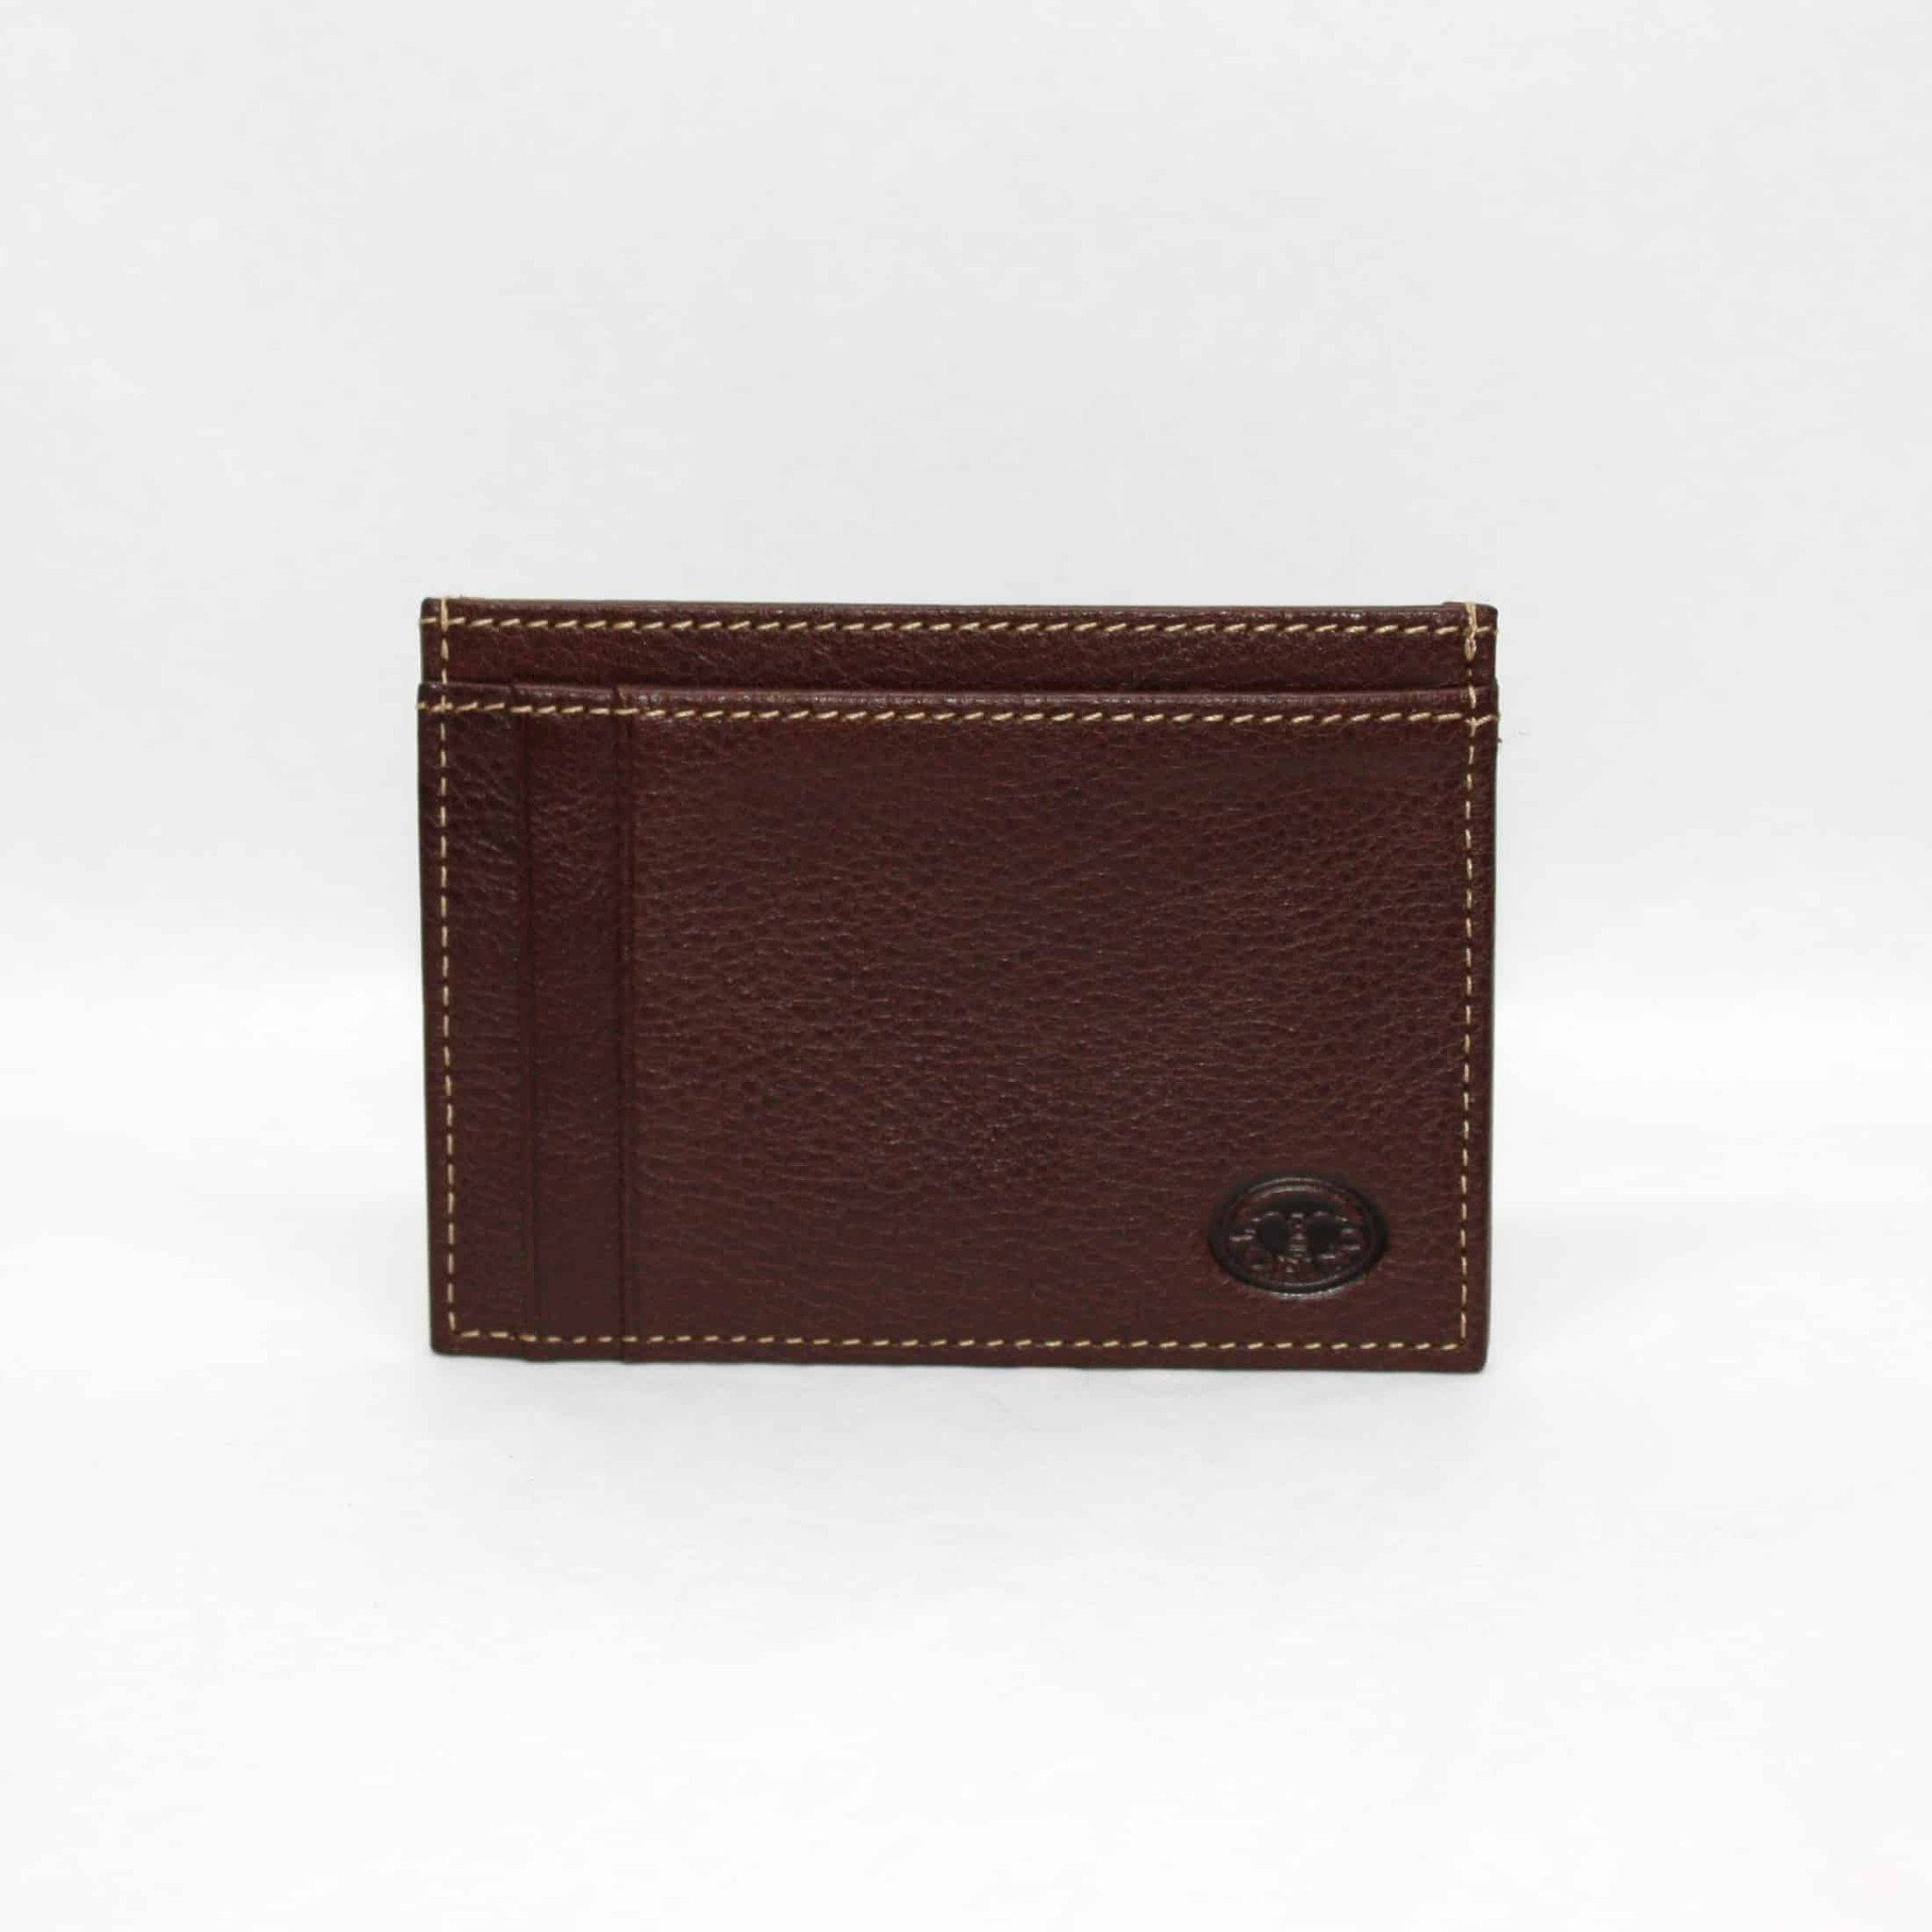 Tumbled Glove Leather ID/Card Case - Brown,WALLETS,GentRow.com, | GentRow.com